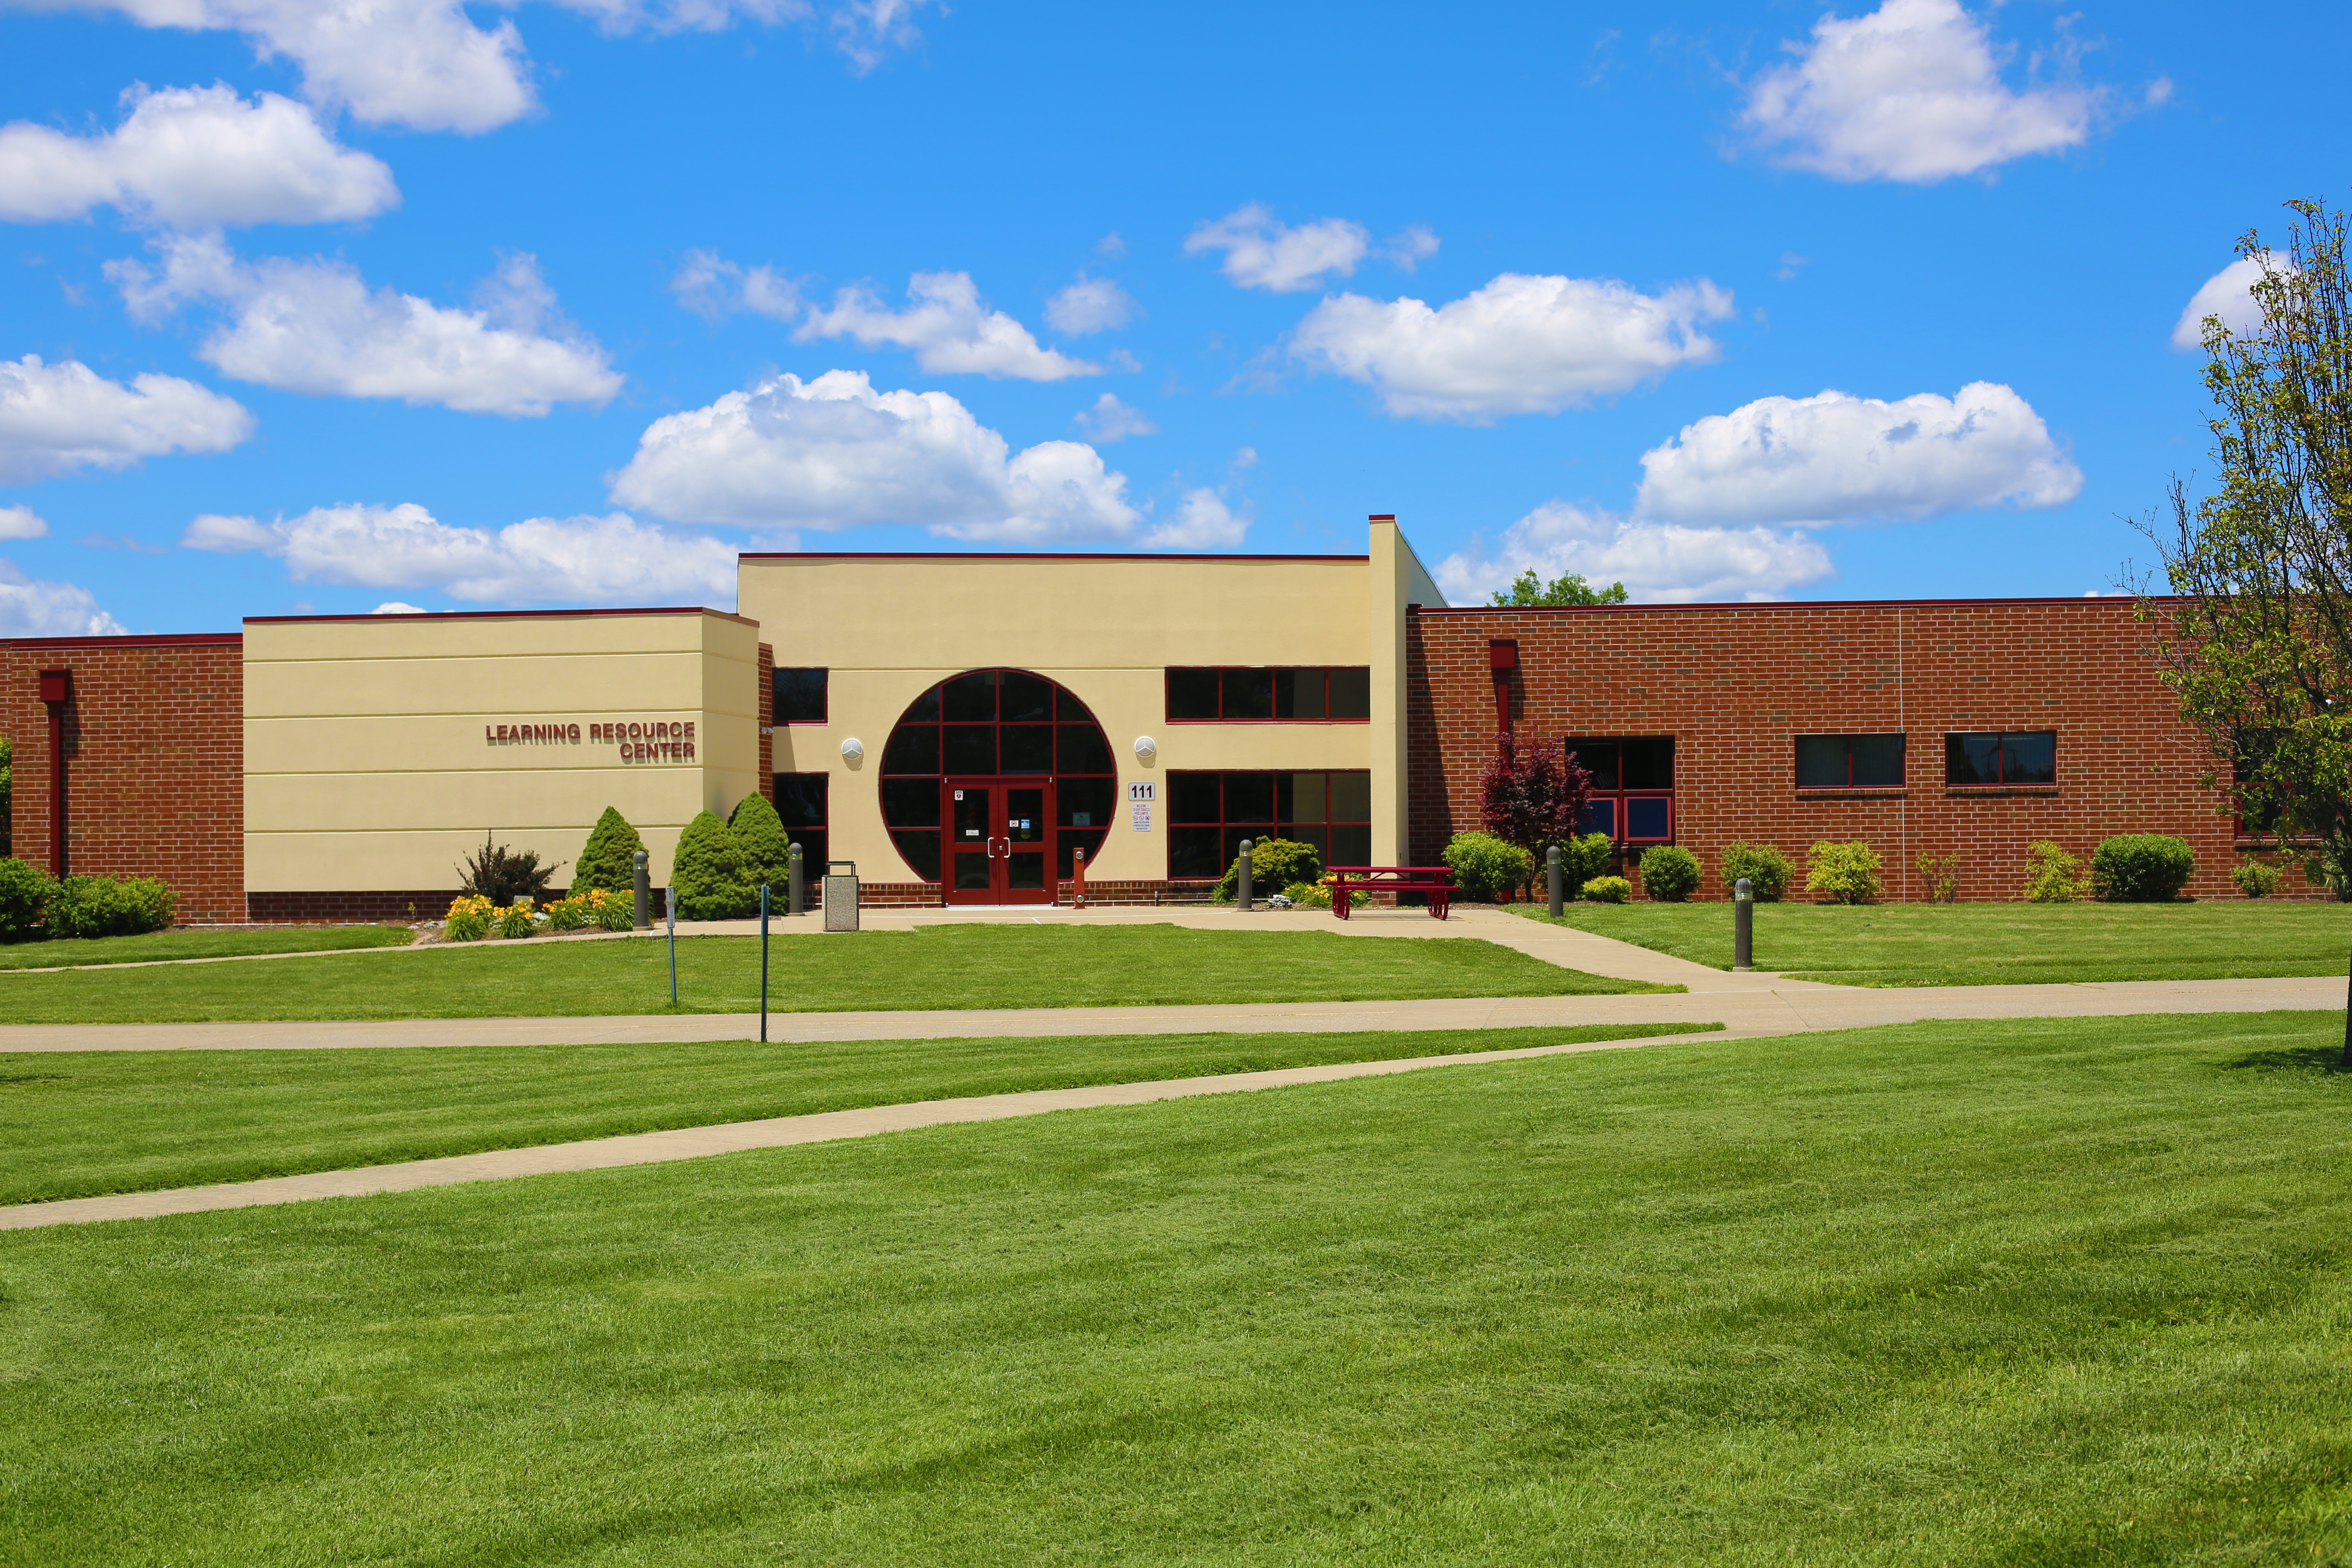 The Learning Resource Center building